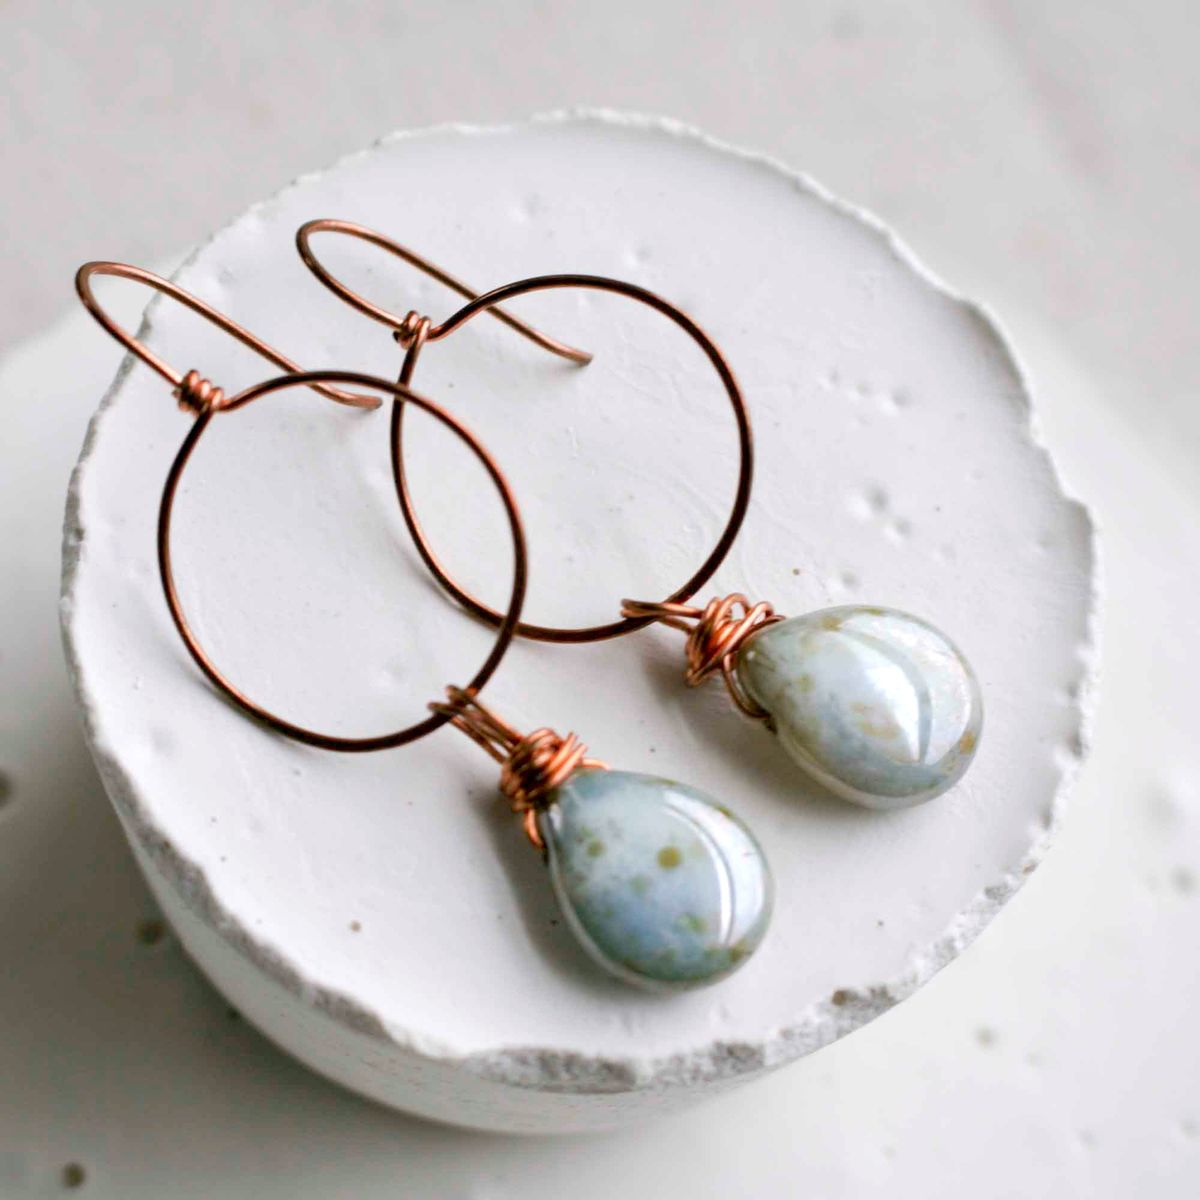 Round Copper Hoop Earring with Tear Drop Glass Beads - product image